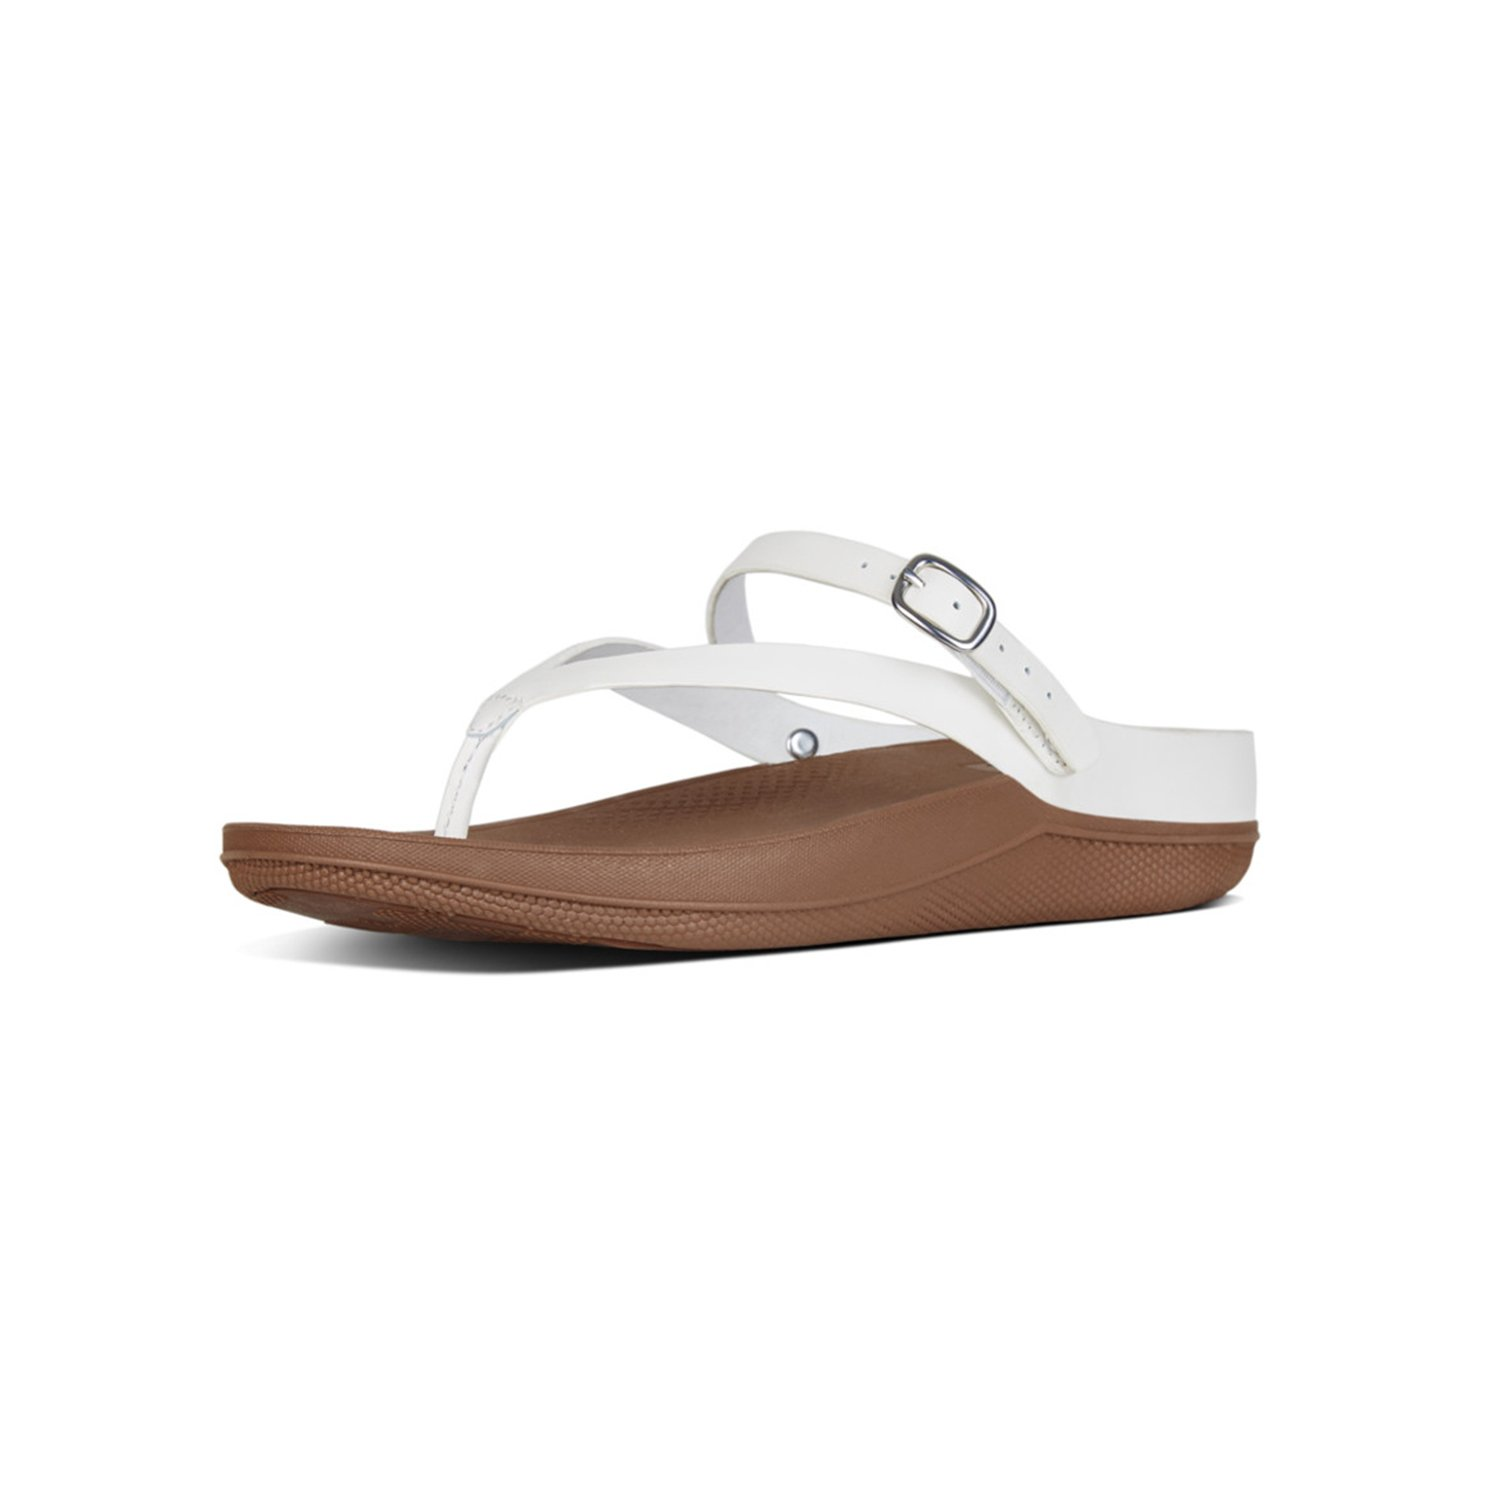 a3aa7a9337249 FitFlop Womens Flip Leather Microwobbleboard Wedge Sandals